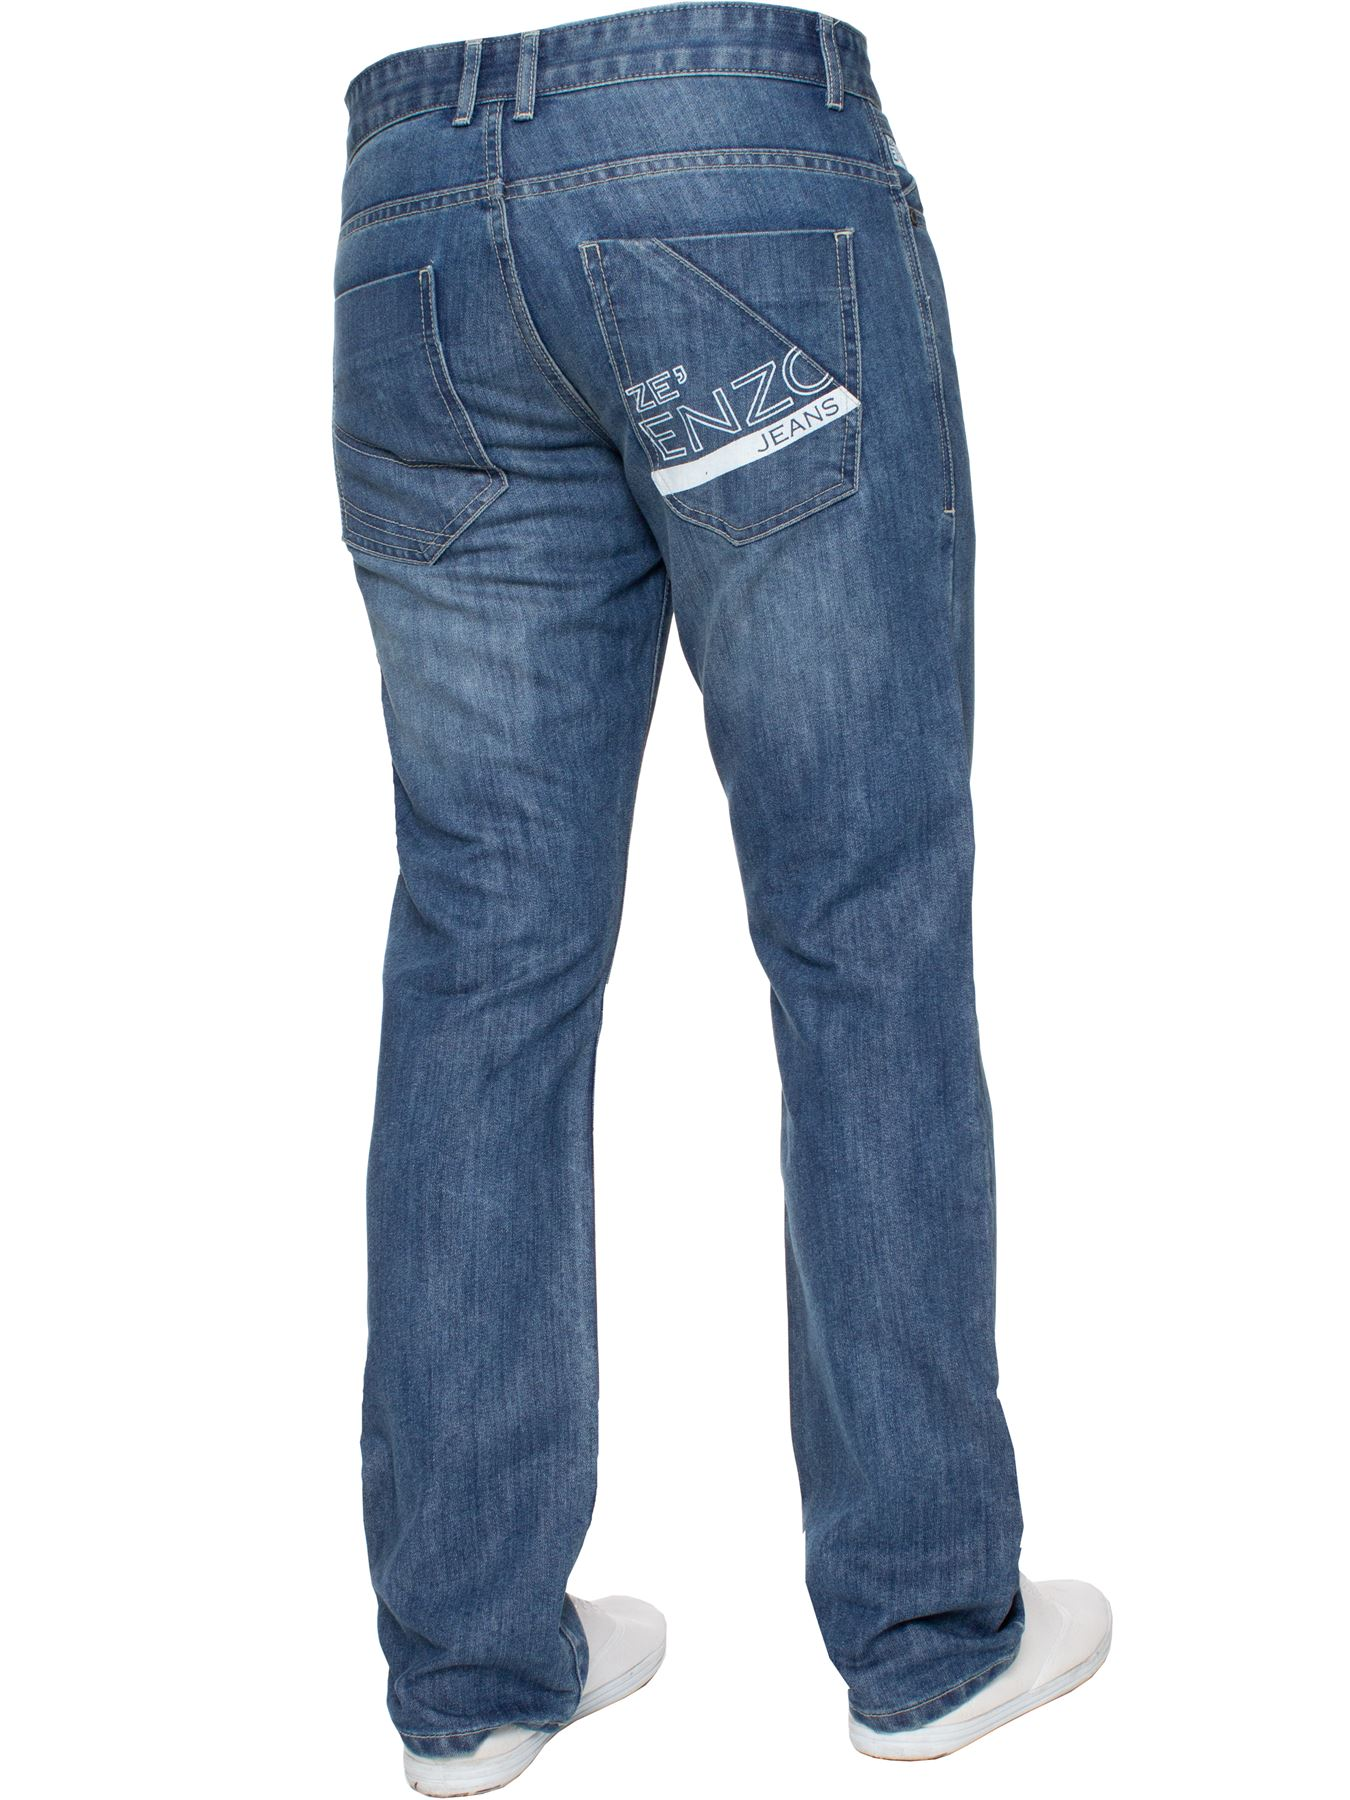 Enzo-Mens-Straight-Jeans-Regular-Leg-Designer-Work-Denim-Pants-All-Waists-Sizes thumbnail 24